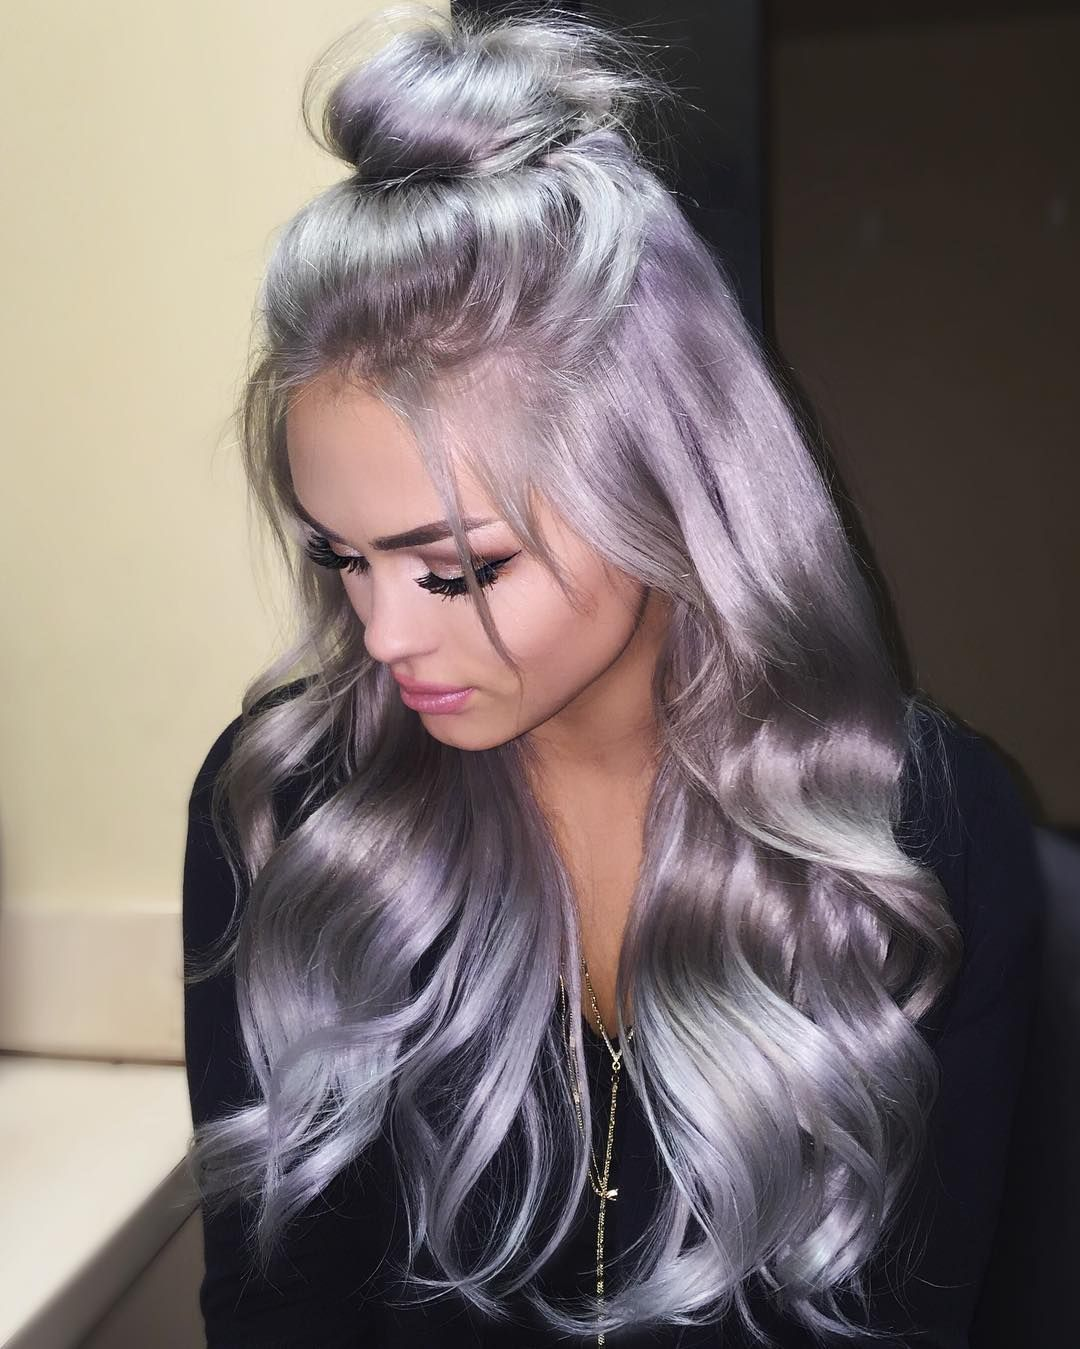 Glamoxury  Glamoxury Xx  Follow Me For More Posts Like This - Silver hair styles